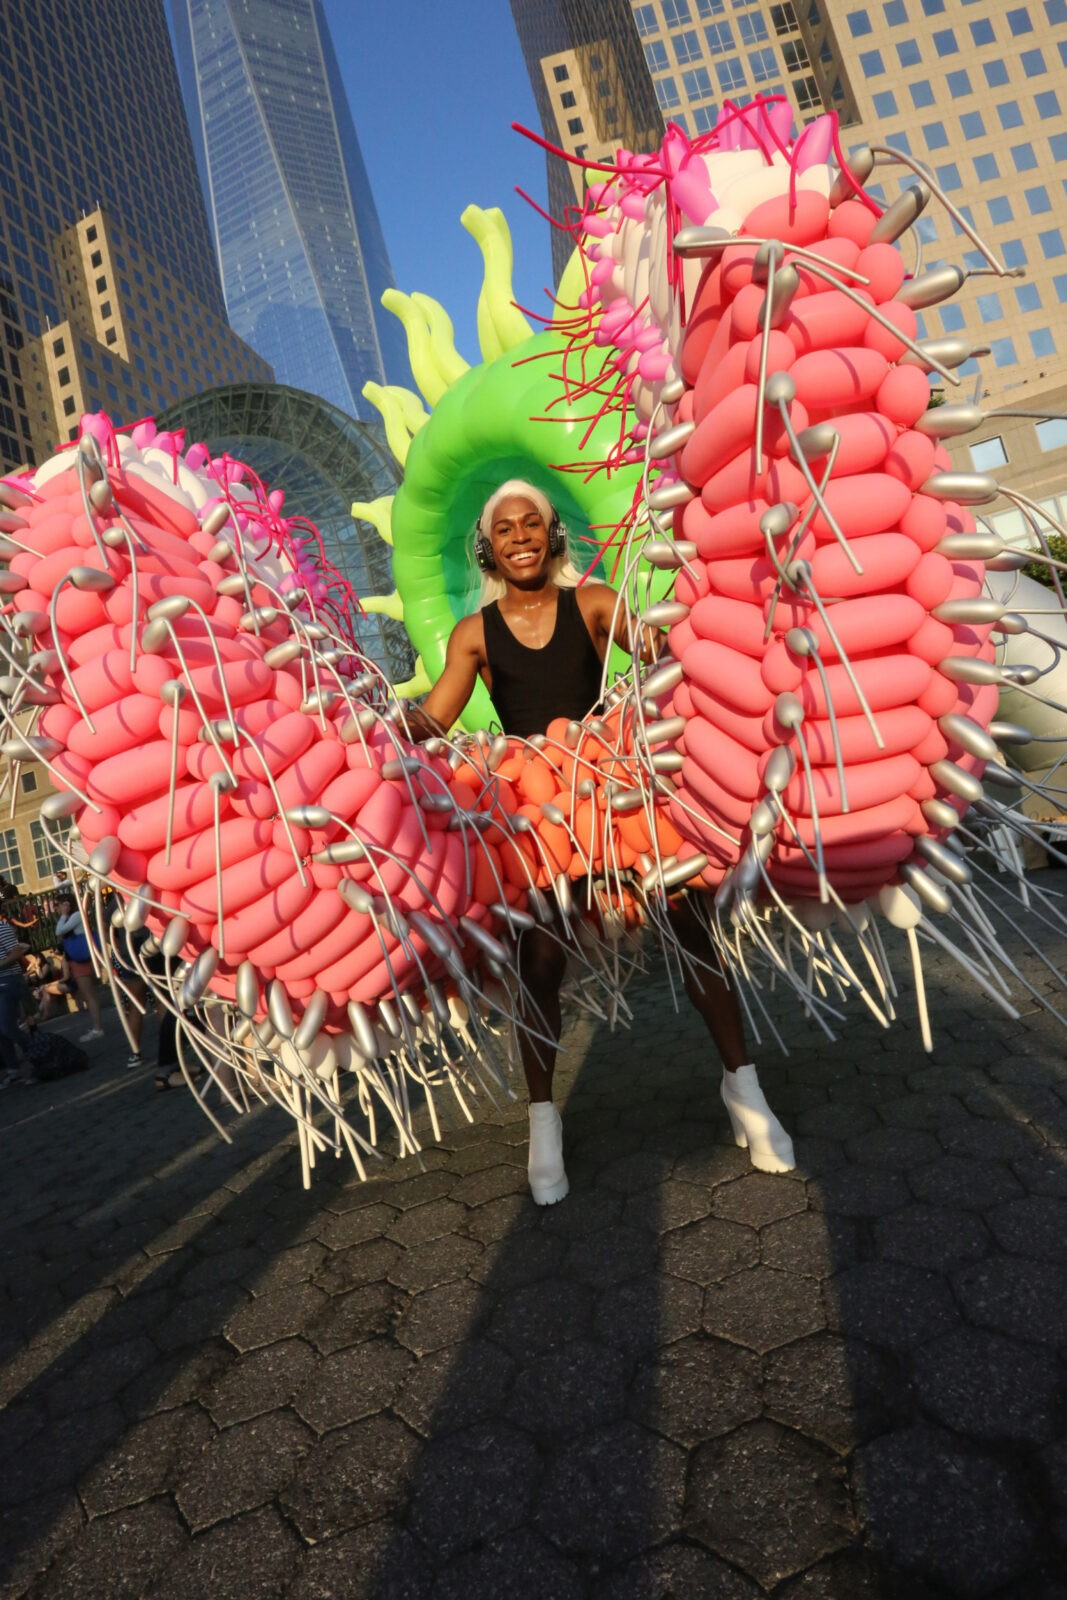 Wild Balloon Creatures Overtake the Streets of New York